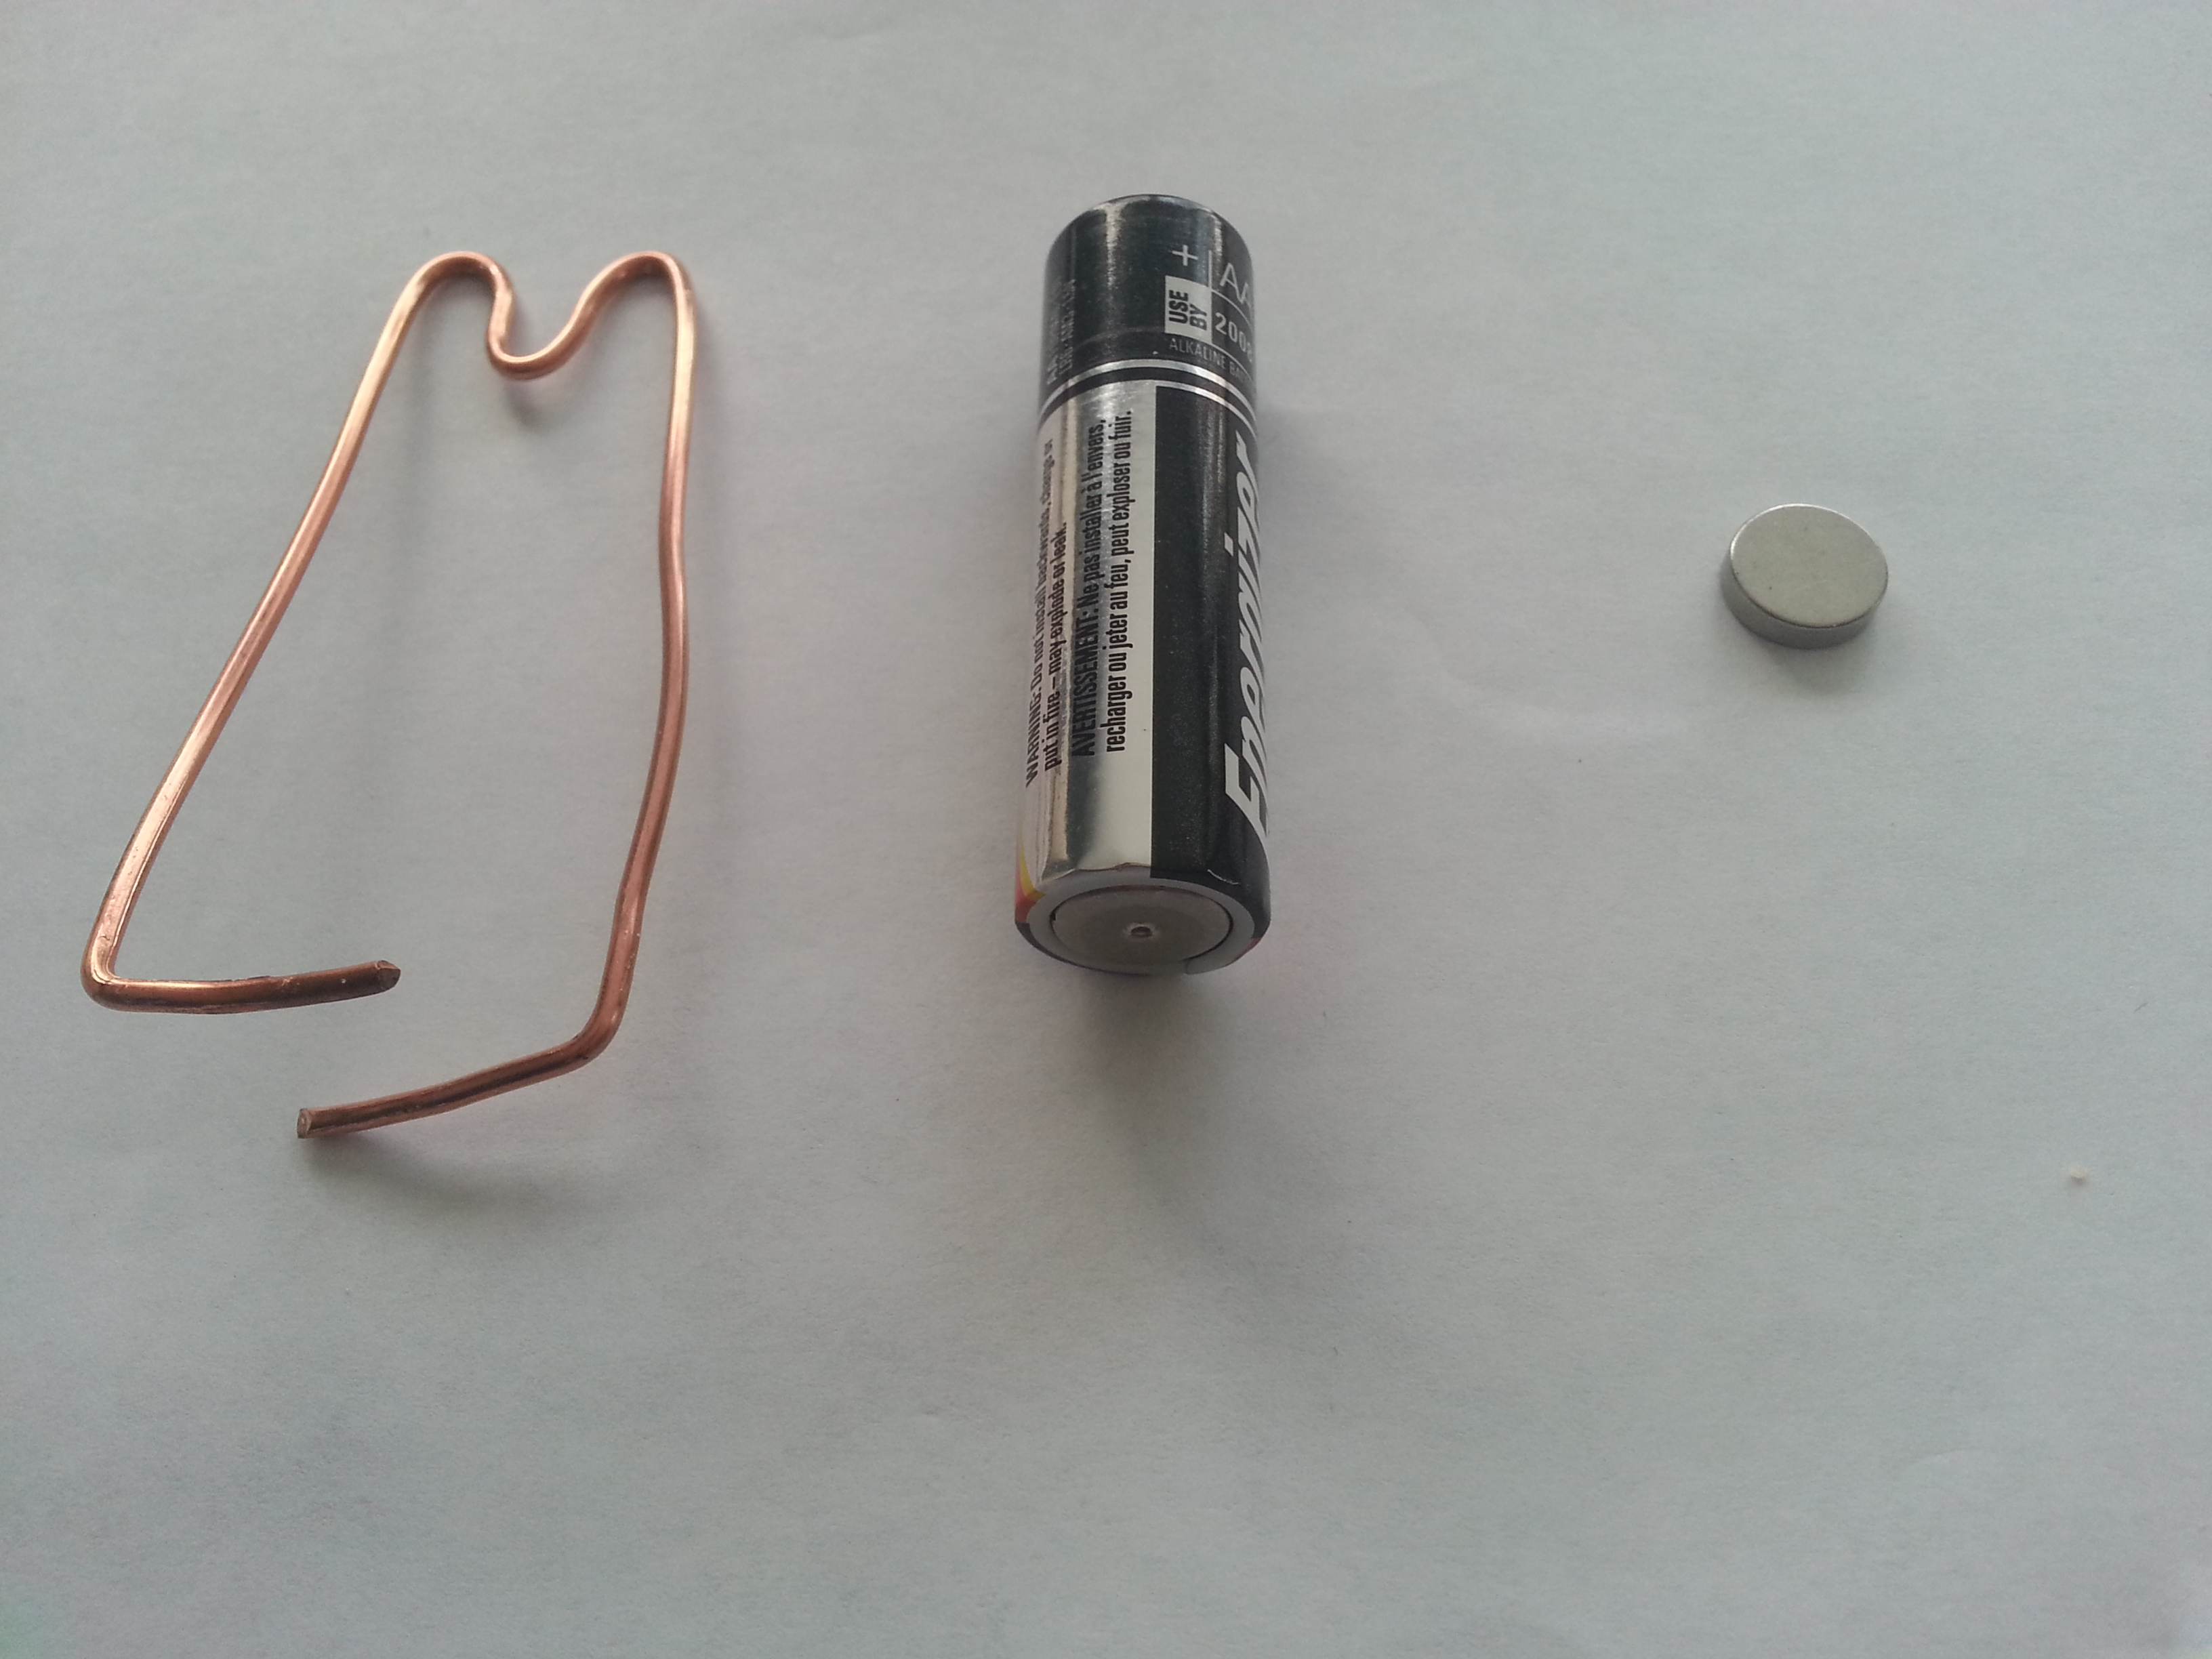 The components for the simplest of electric motors to demonstrate electro-magnetic forces.